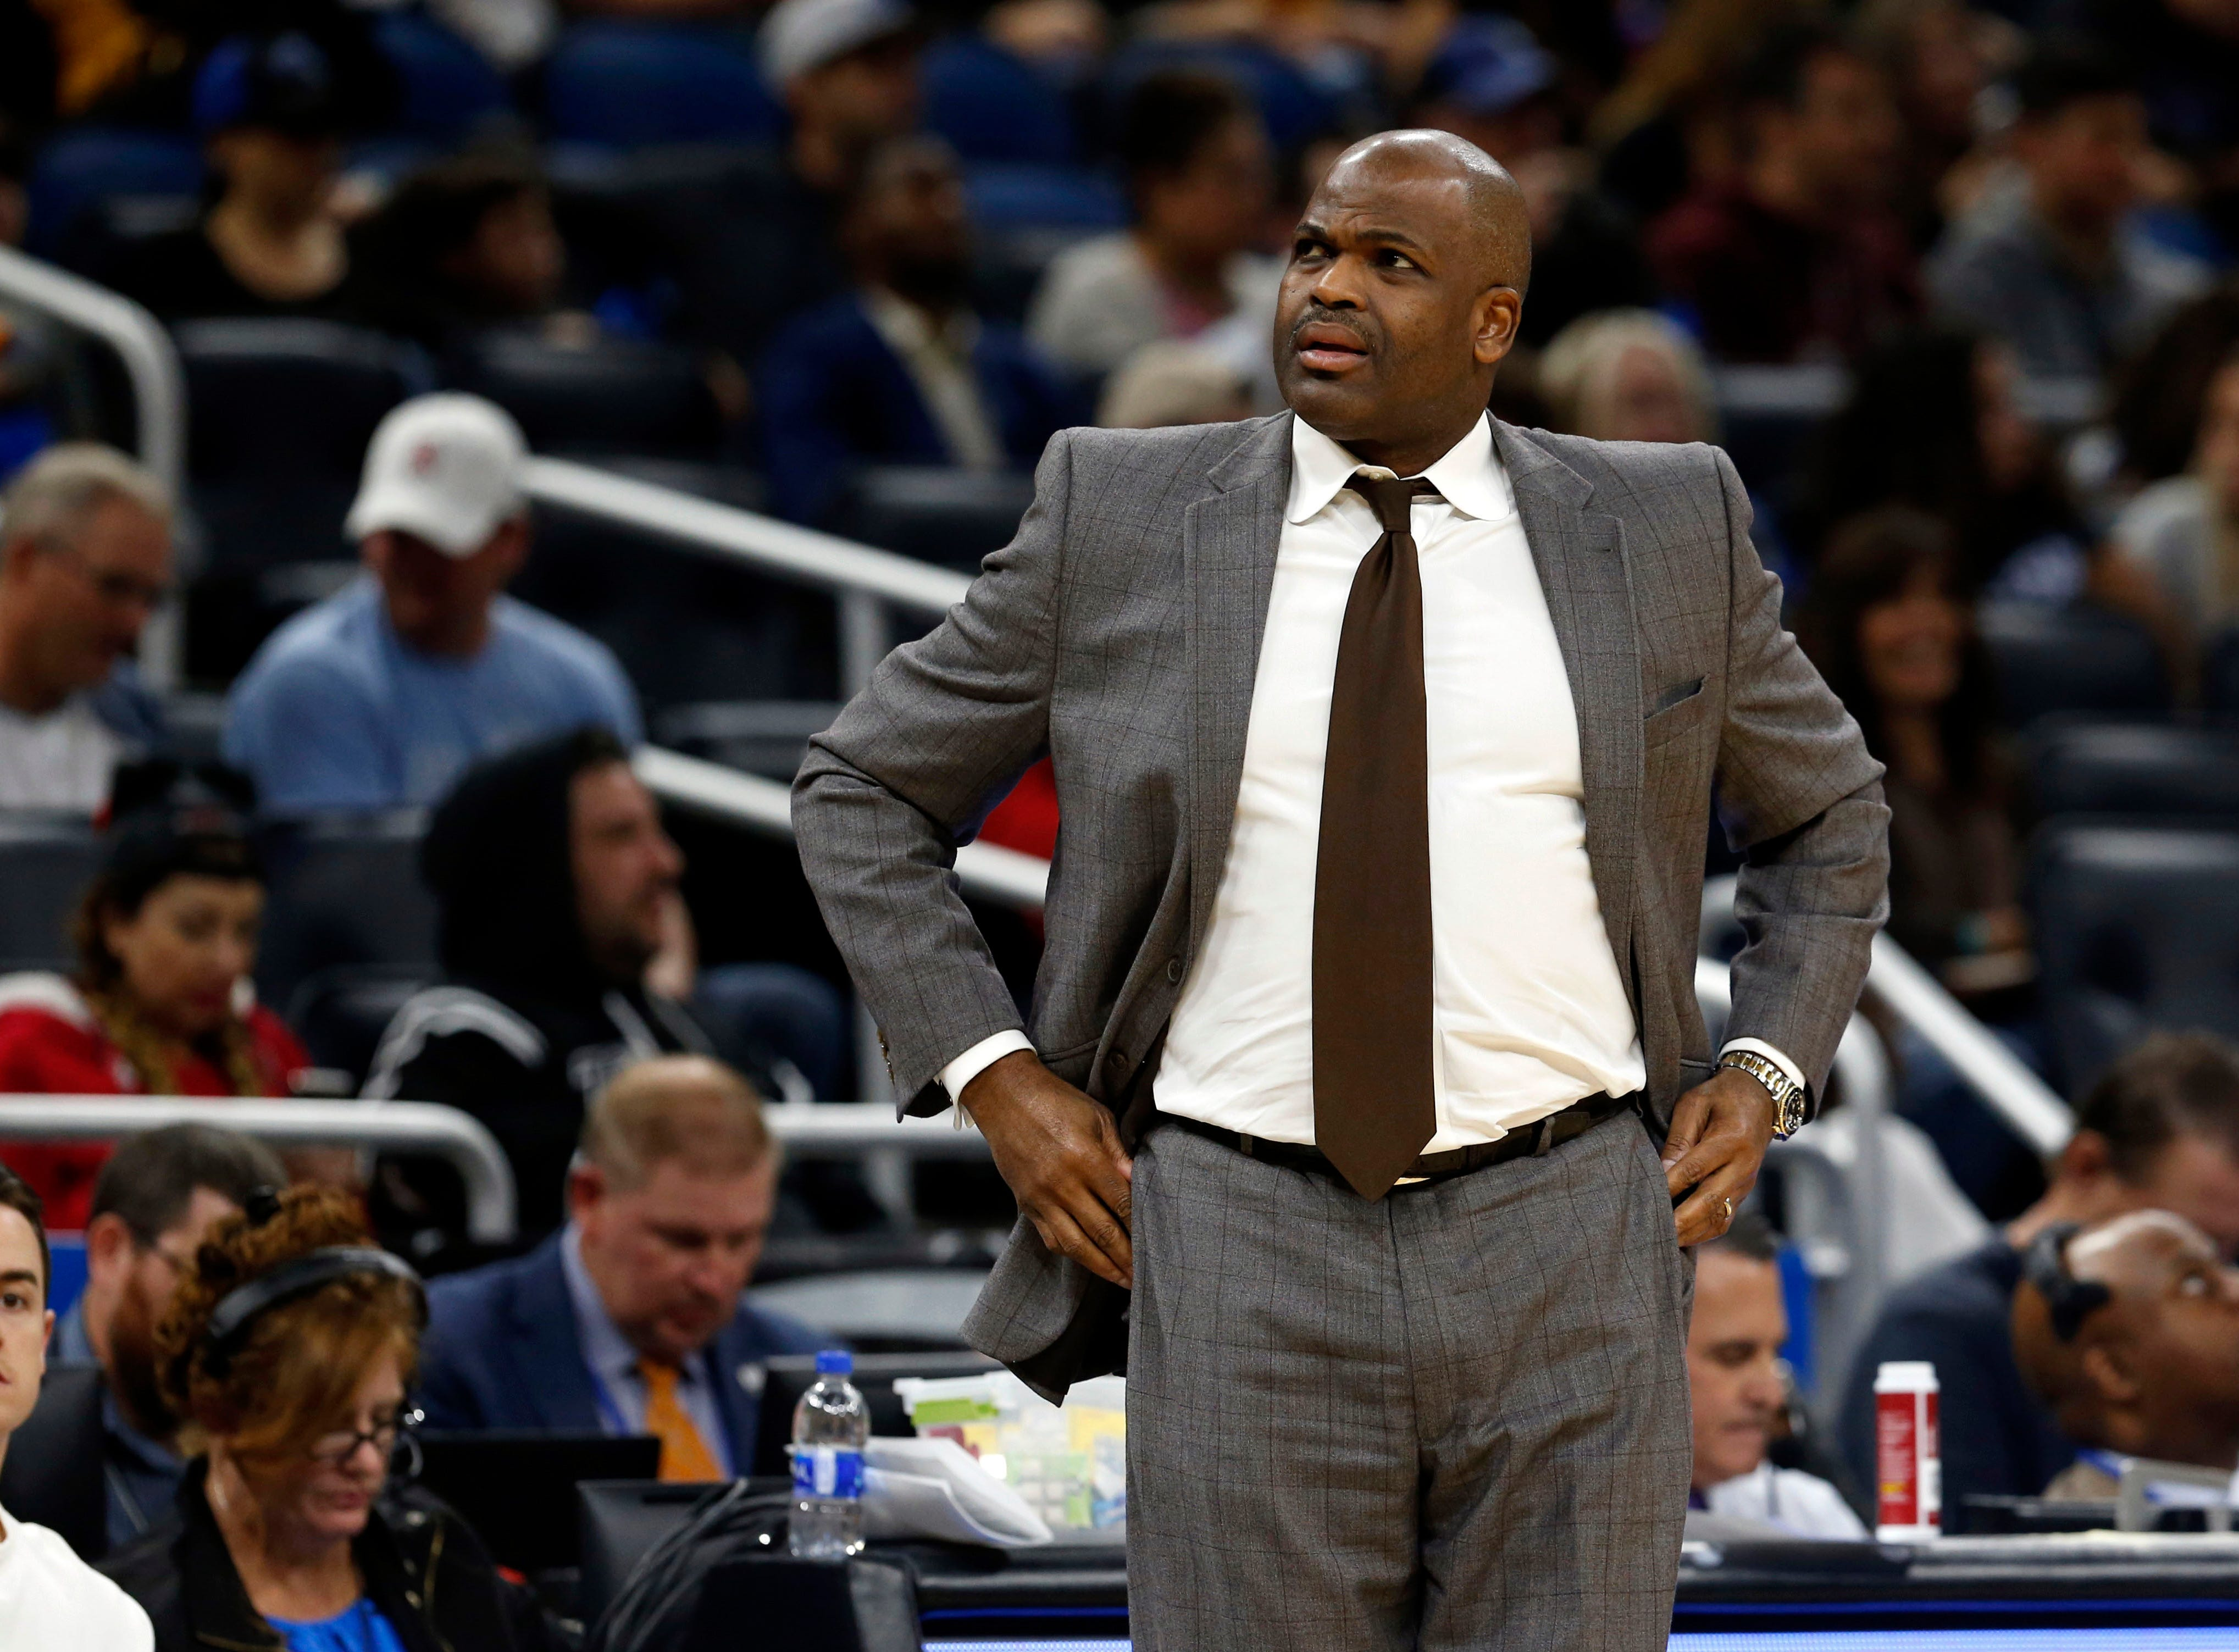 Dec 7, 2018; Orlando, FL, USA; Indiana Pacers head coach Nate McMillan looks on against the Orlando Magic during the first quarter at Amway Center. Mandatory Credit: Kim Klement-USA TODAY Sports